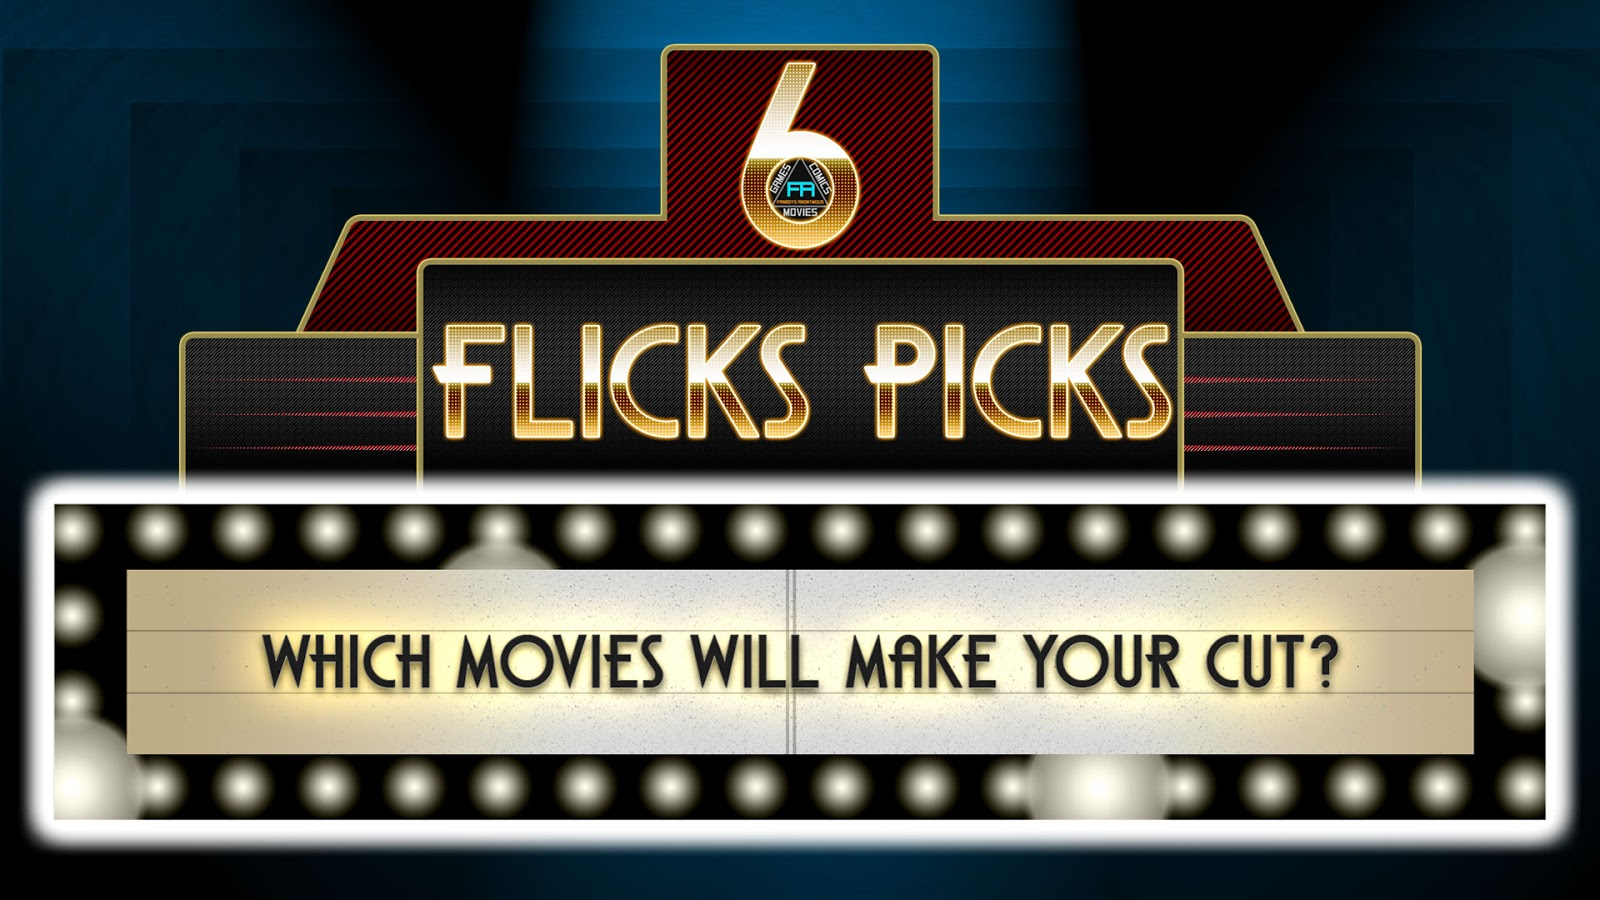 What movies are coming out July 2017 6 Flicks Picks